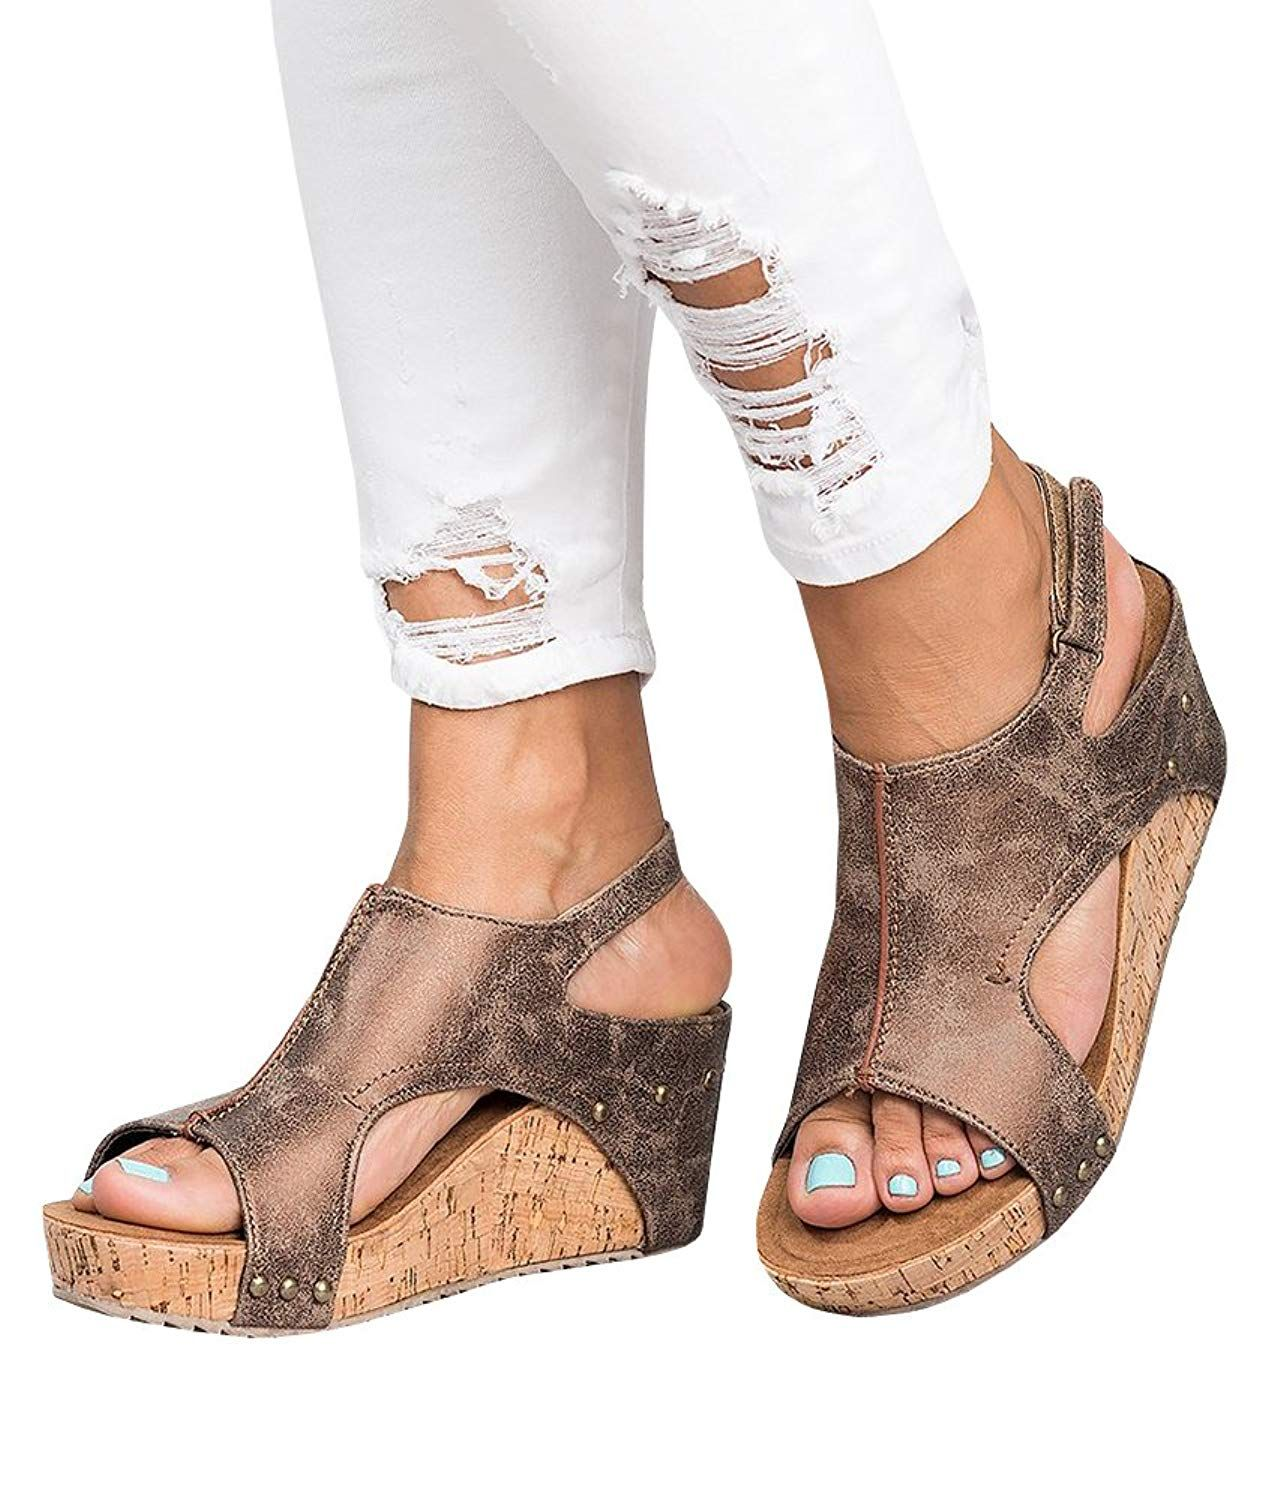 f94f220f3f Pxmoda Women's Peep Toe Ankle Buckle Gladiator Wedges Sandals Summer Platform  Sandals. Pxmoda Women's Peep Toe Ankle Buckle Gladiator Wedges Sandals  Summer ...